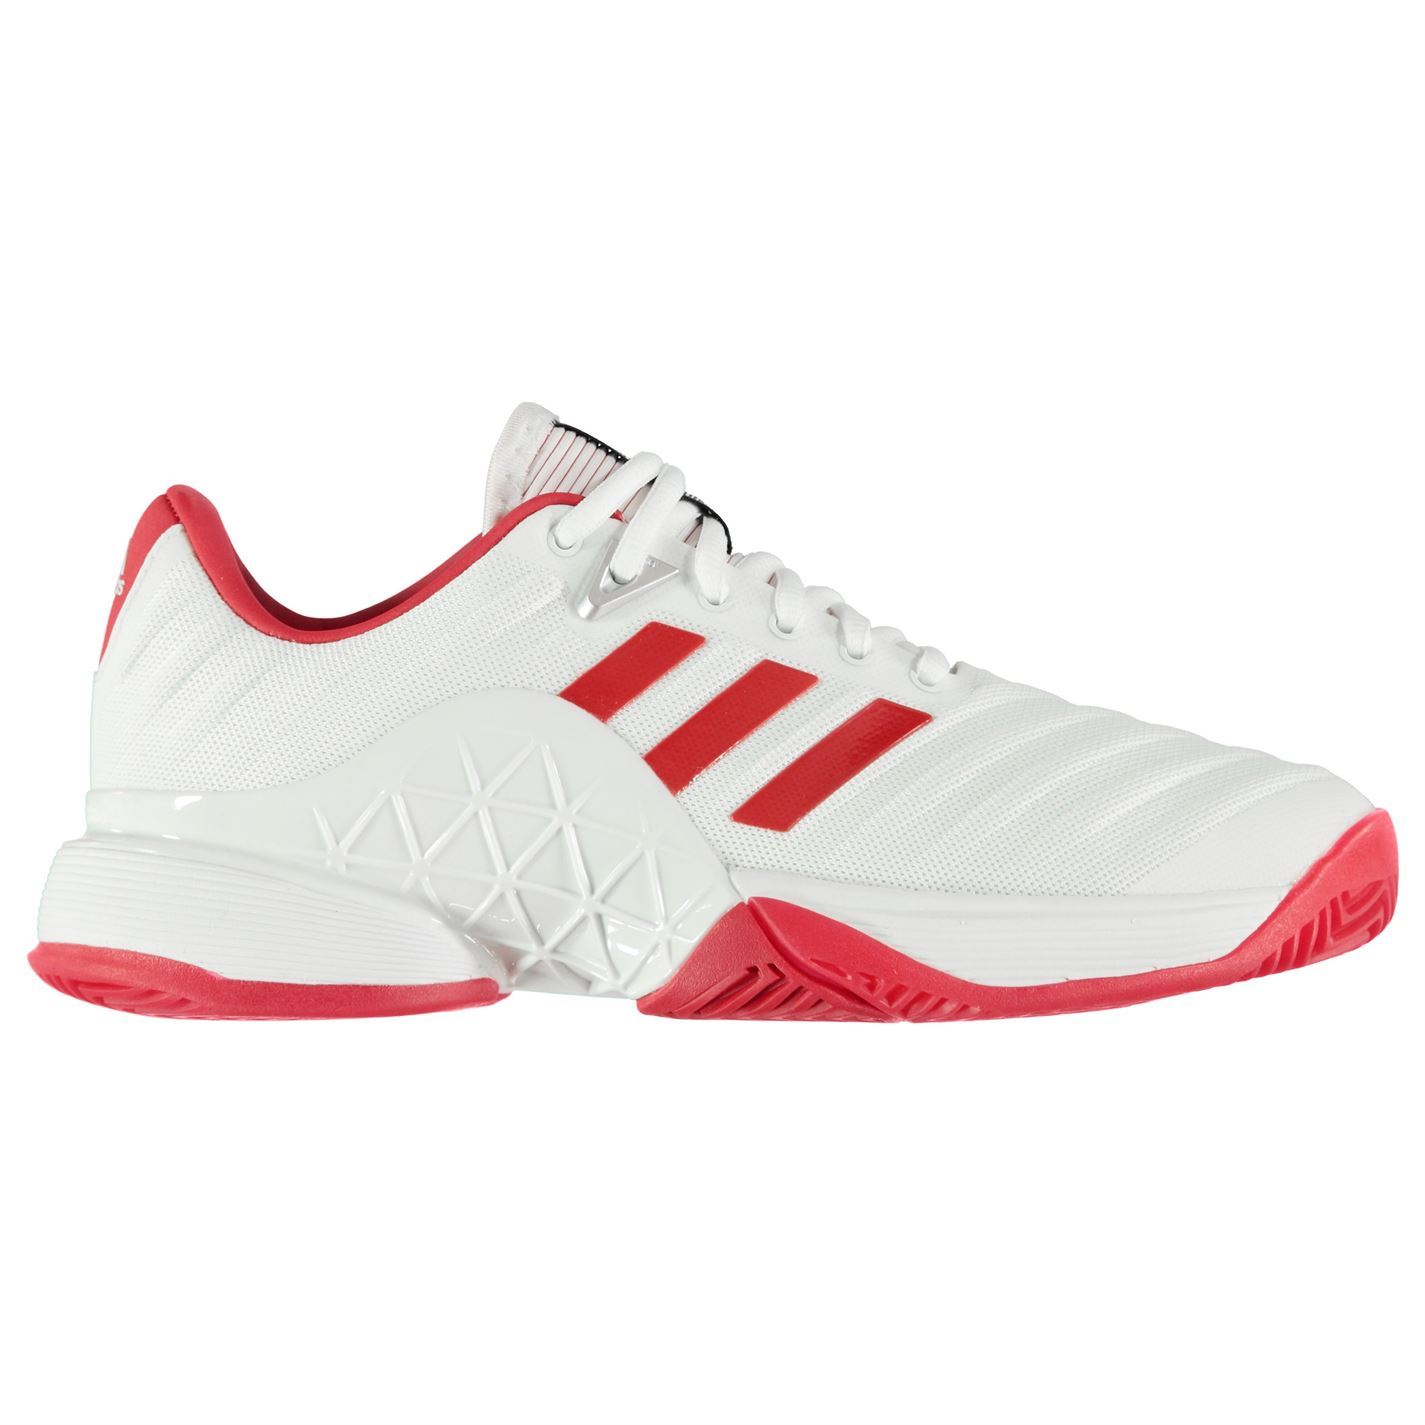 07403c53ce364d ... adidas Barricade 2018 Tennis Shoes Womens White Red Court Trainers  Sneakers ...